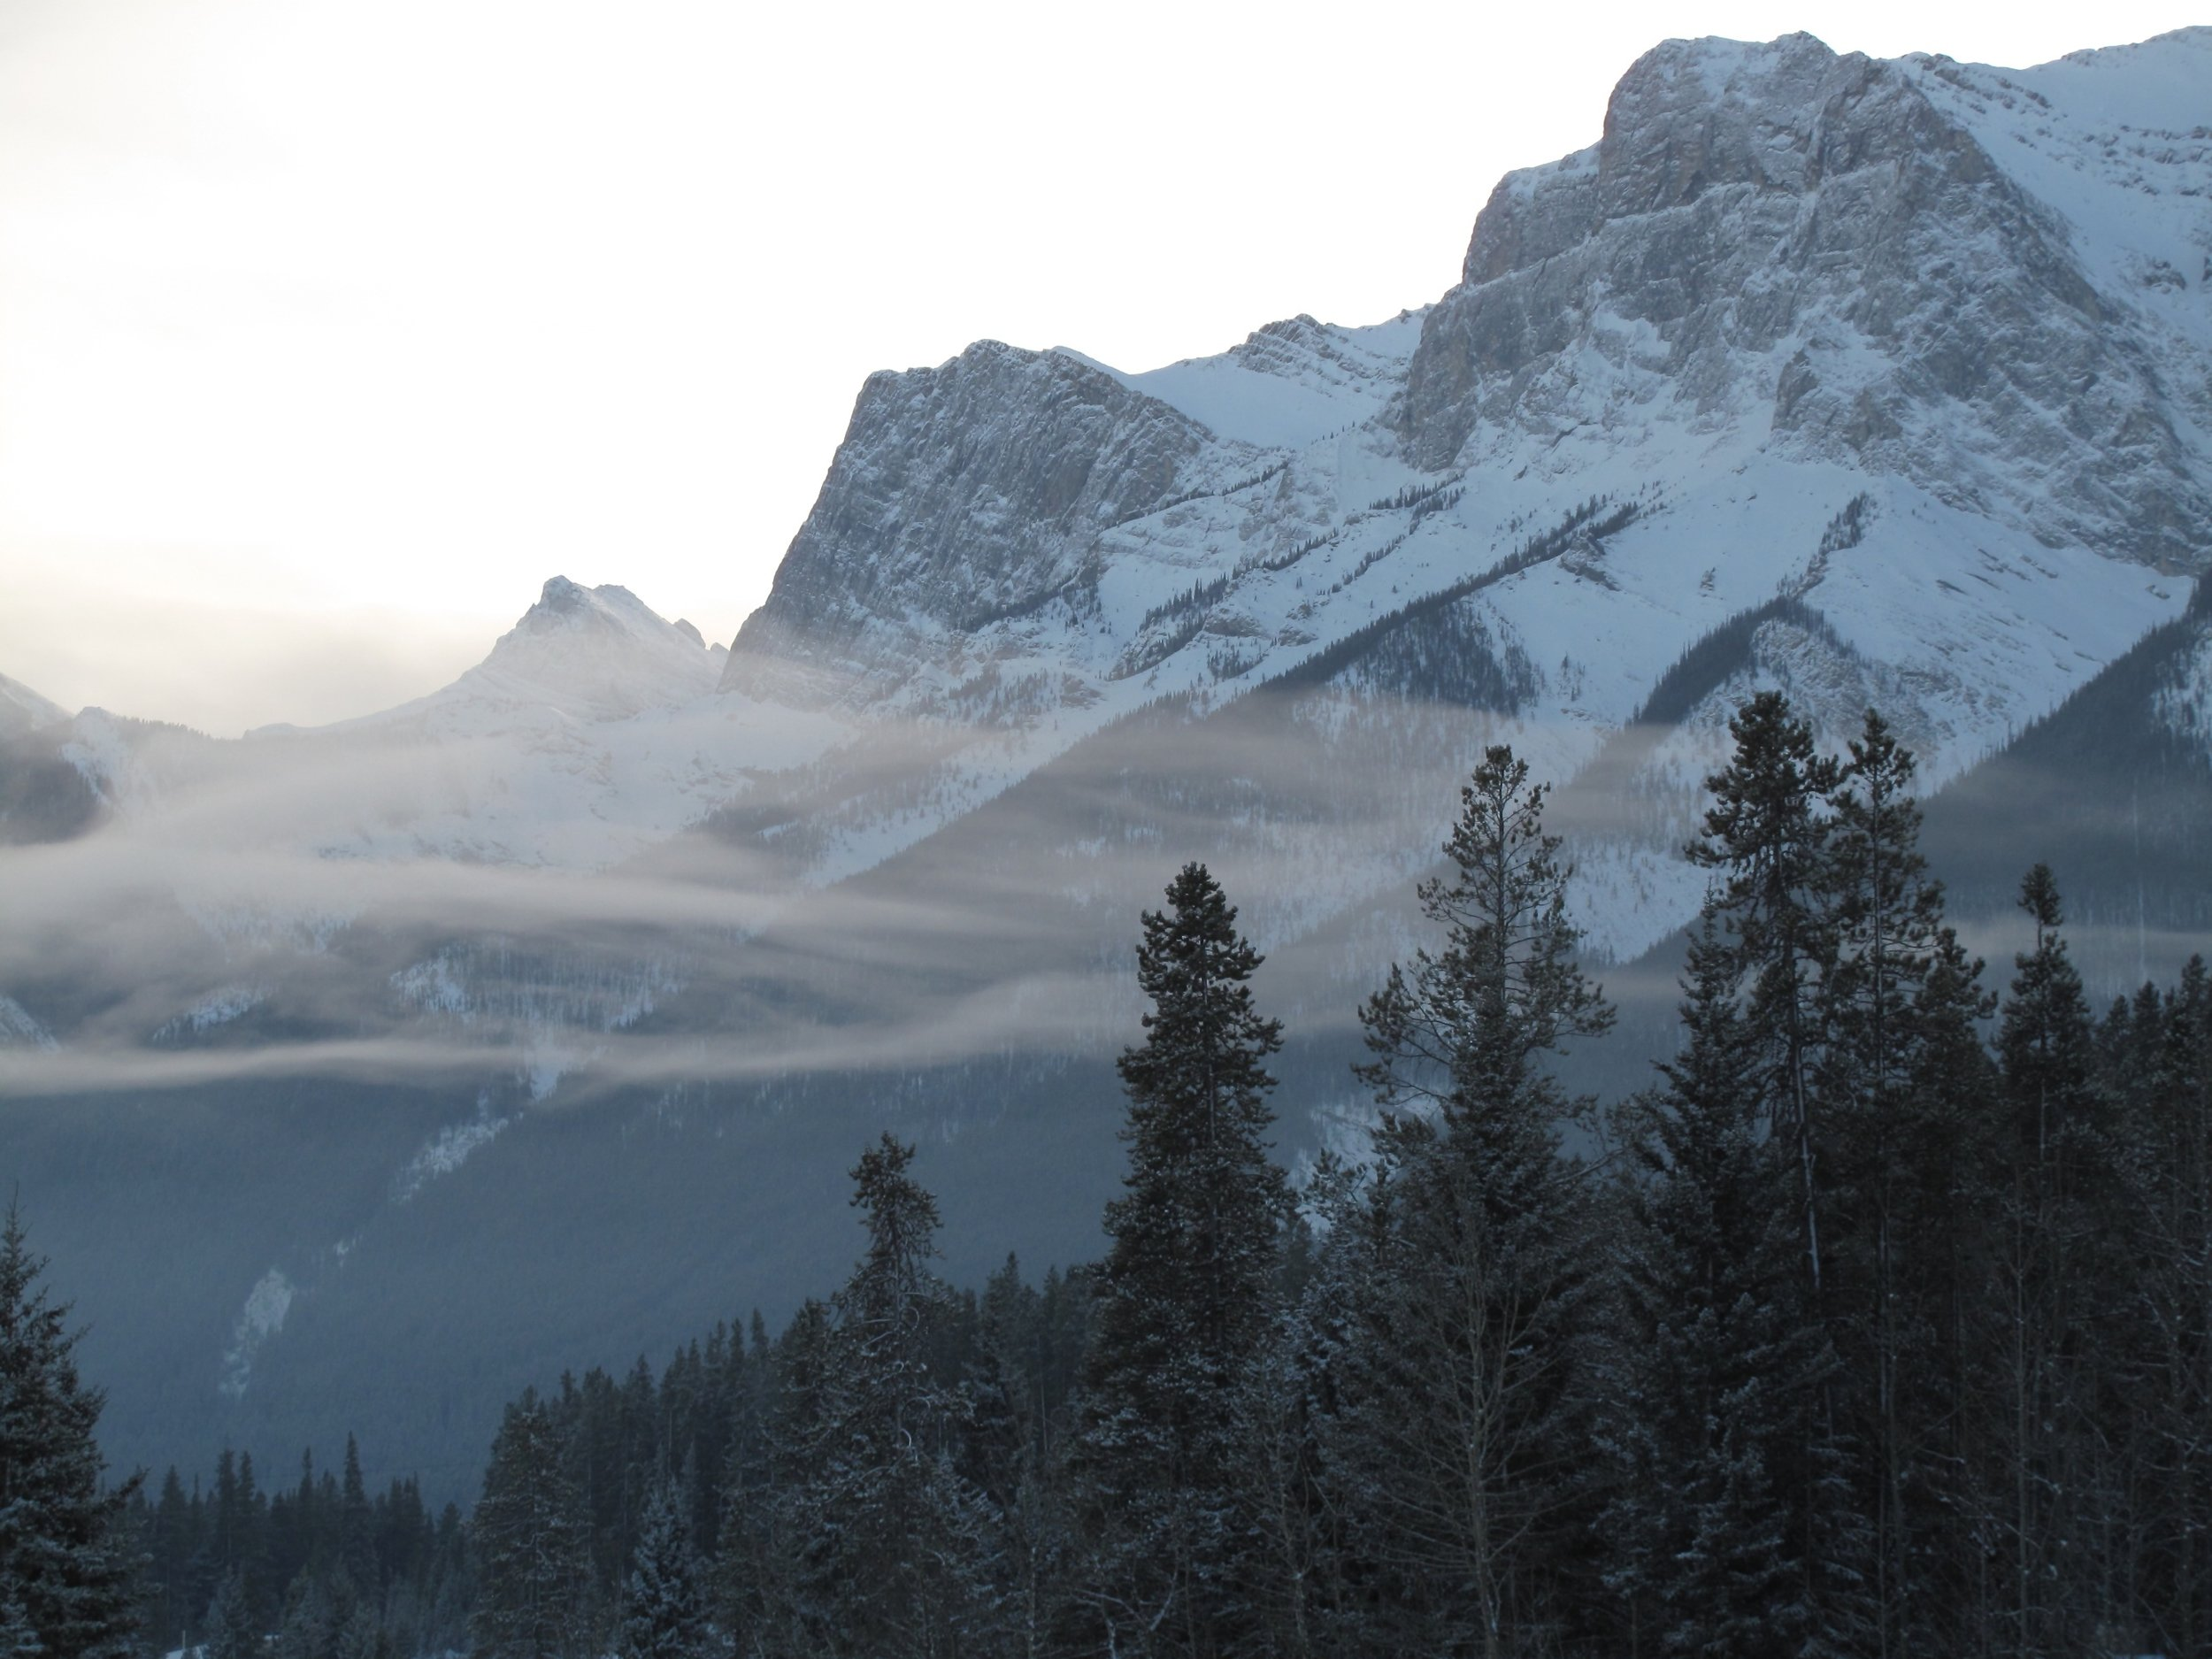 Midday, midwinter, just outside Canmore.